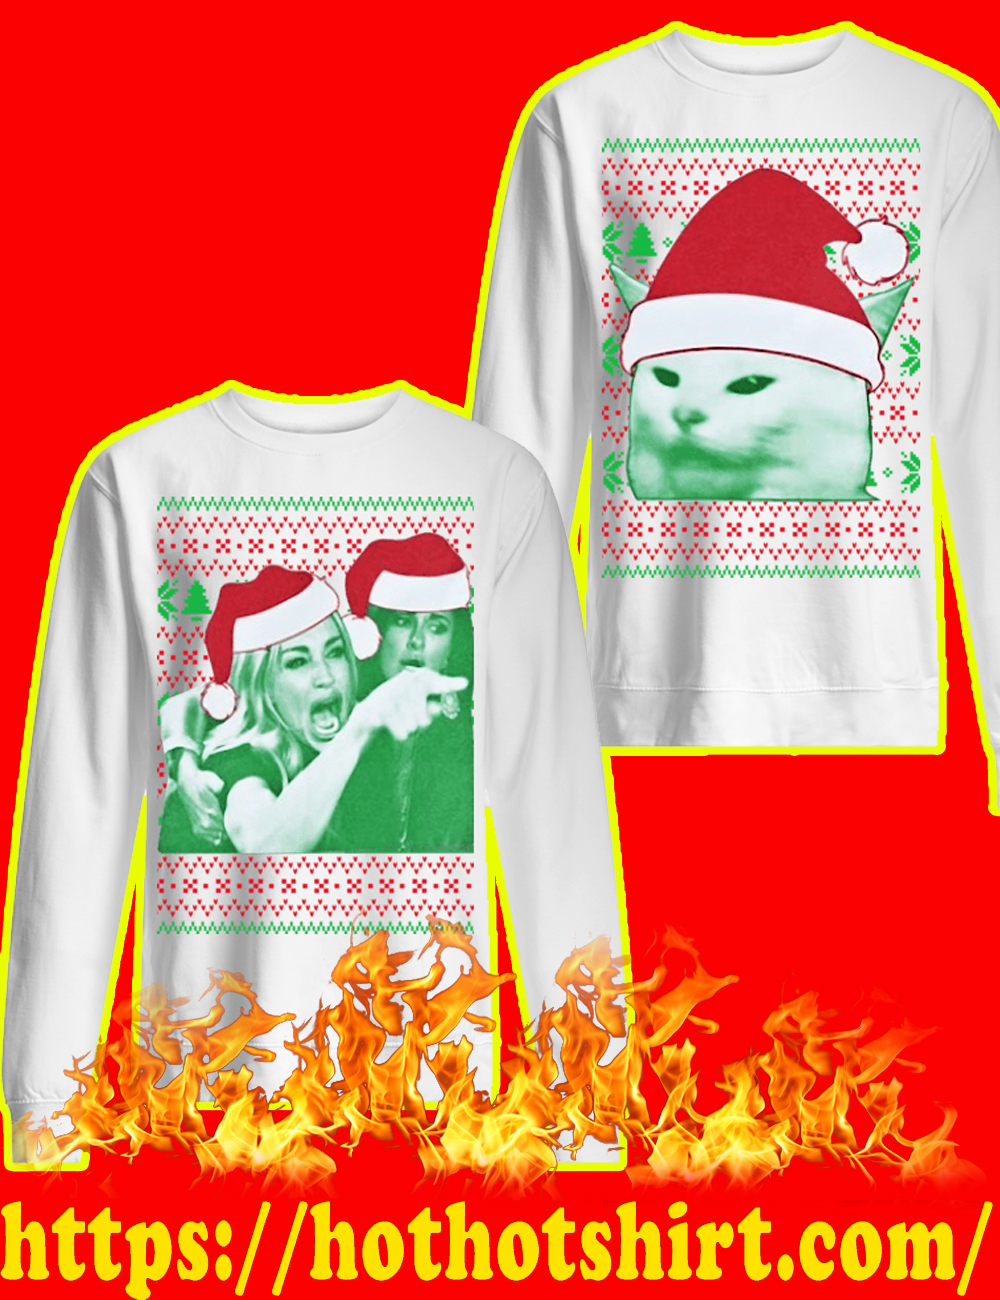 Woman yelling at a cat meme christmas sweater-style 3